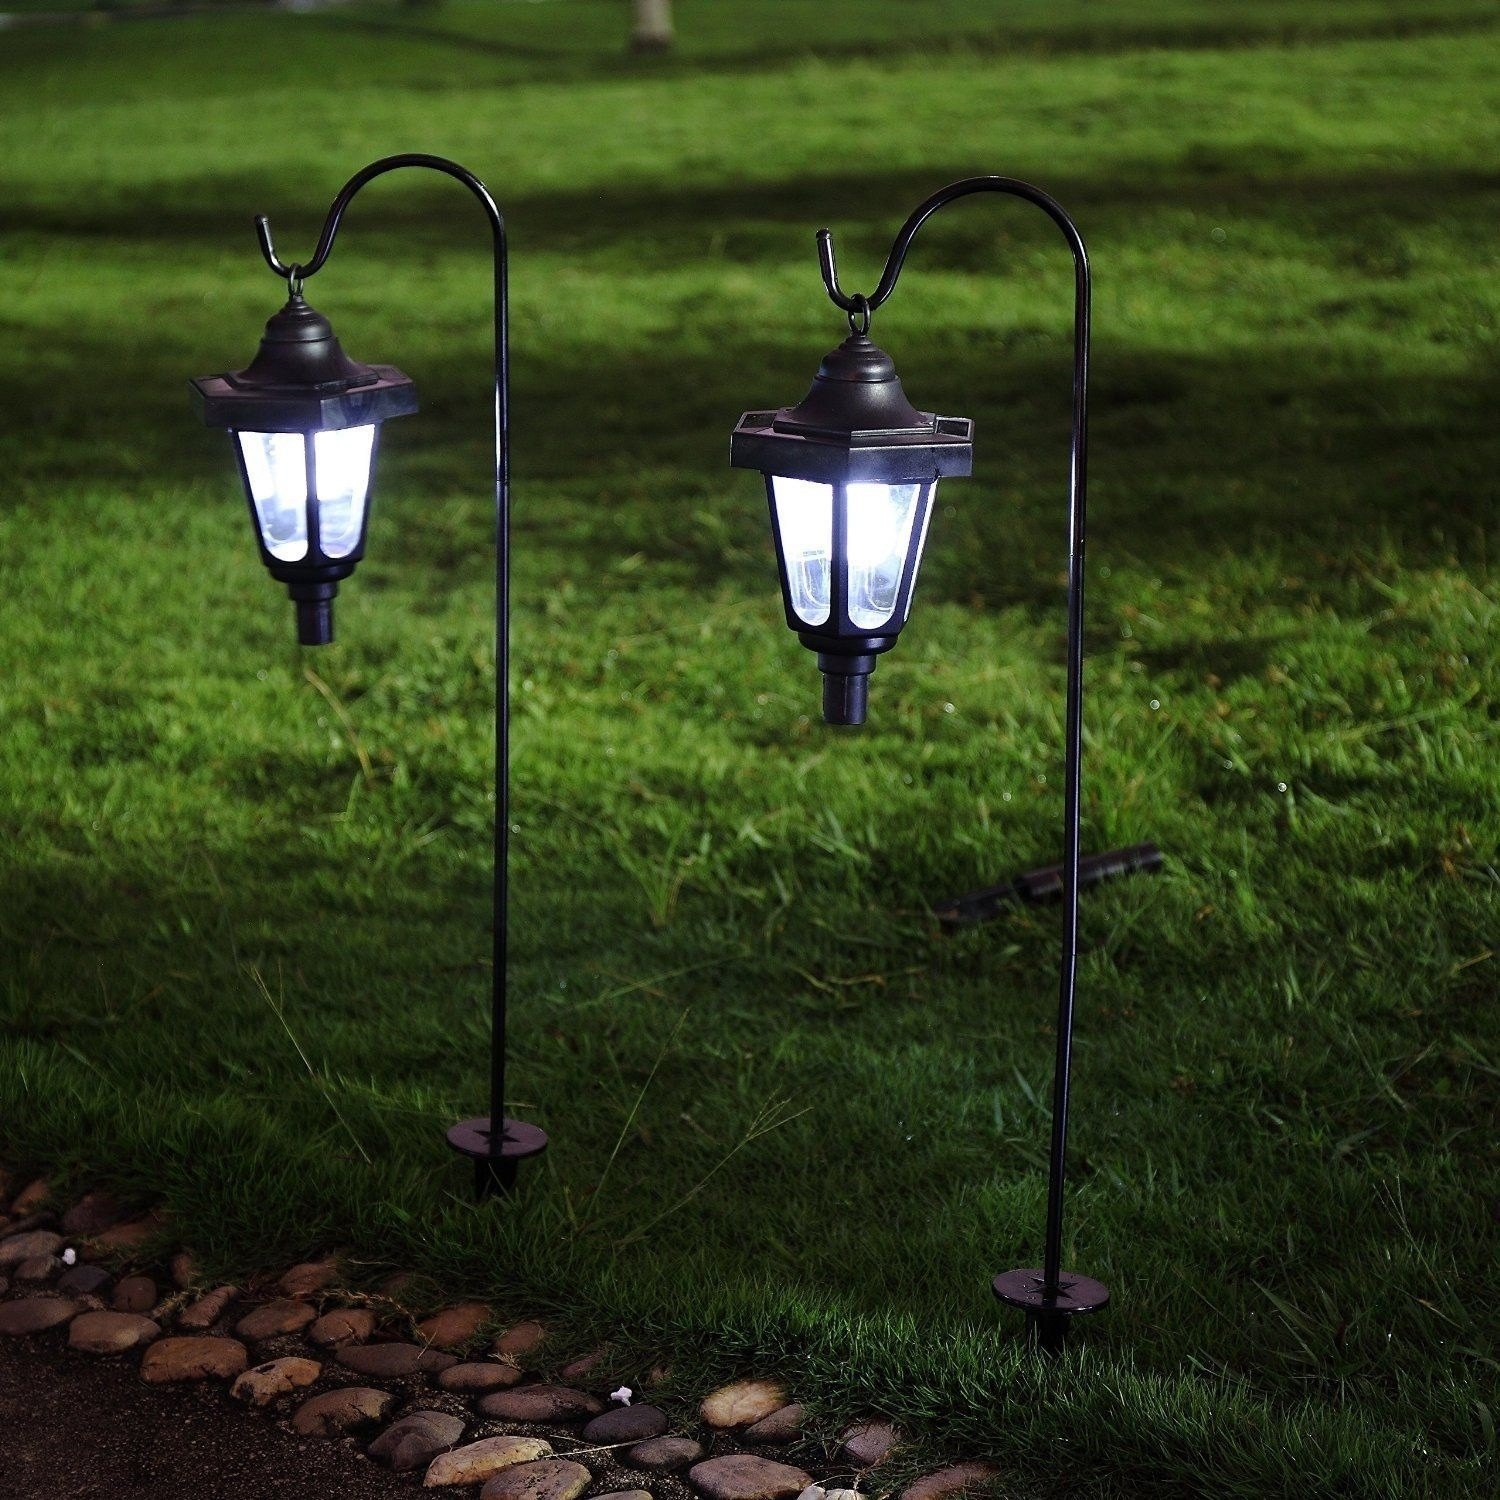 30 Best Of Solar Hanging Lanterns Lights Outdoor for Elegant Outdoor Lanterns (Image 1 of 20)